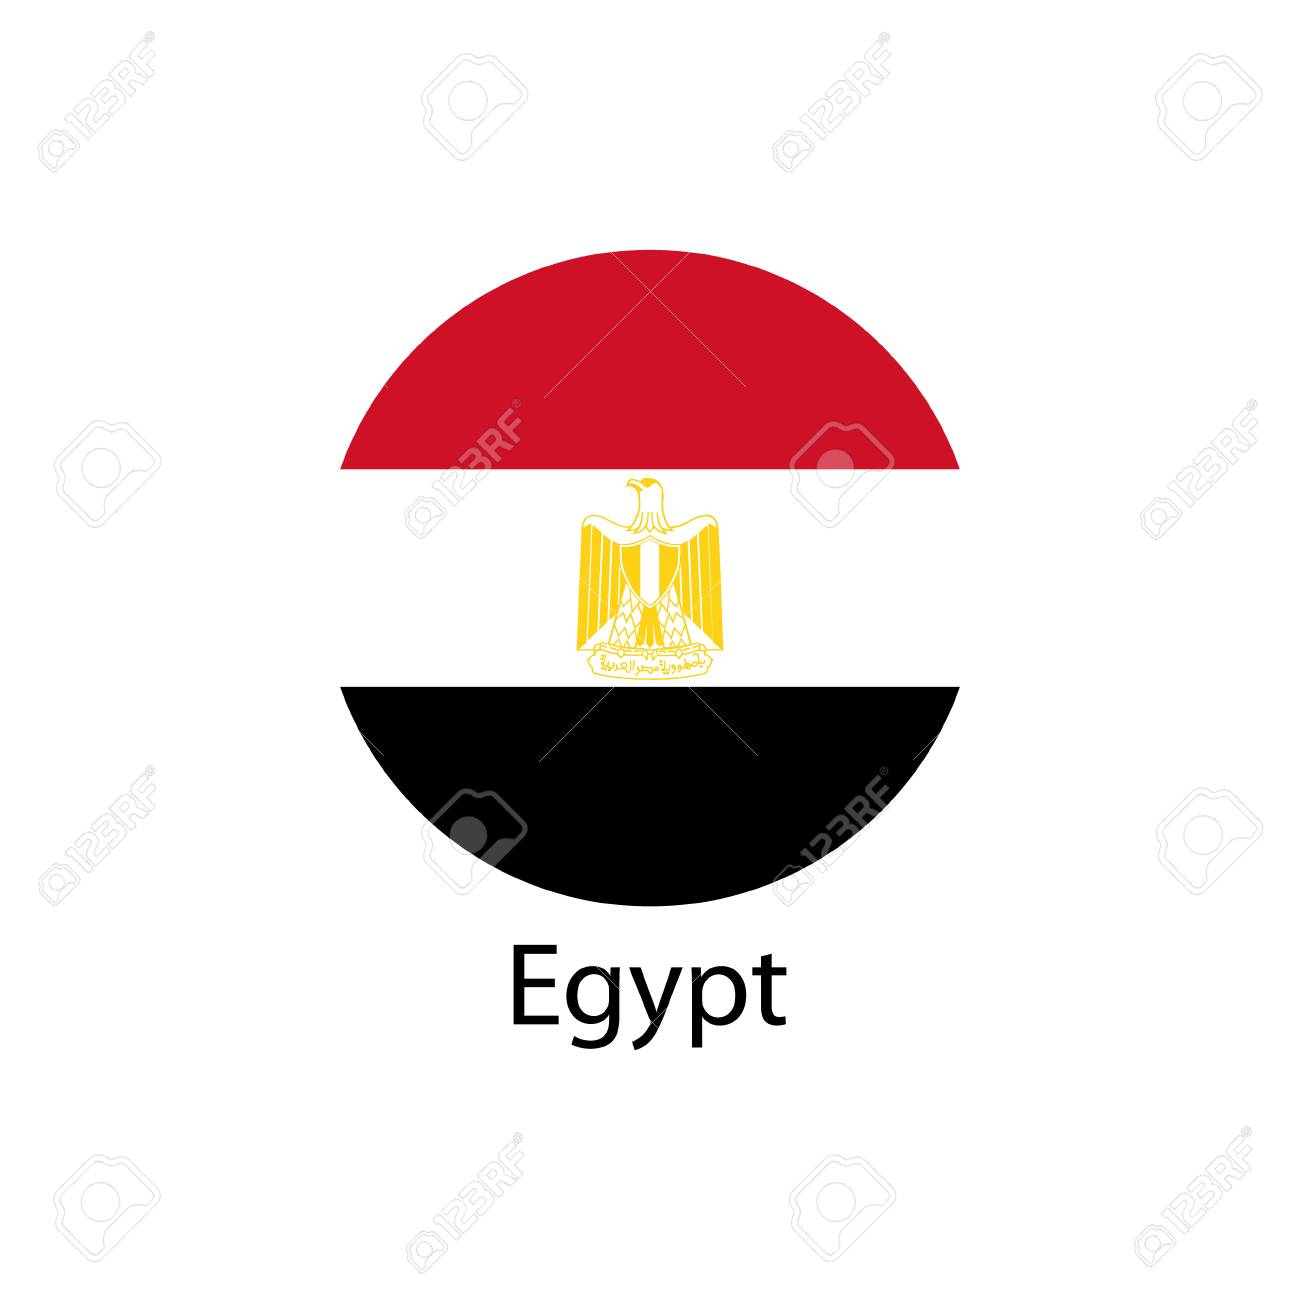 The Flag Of Egypt In The Form Of A Circle And The Name Of The ...